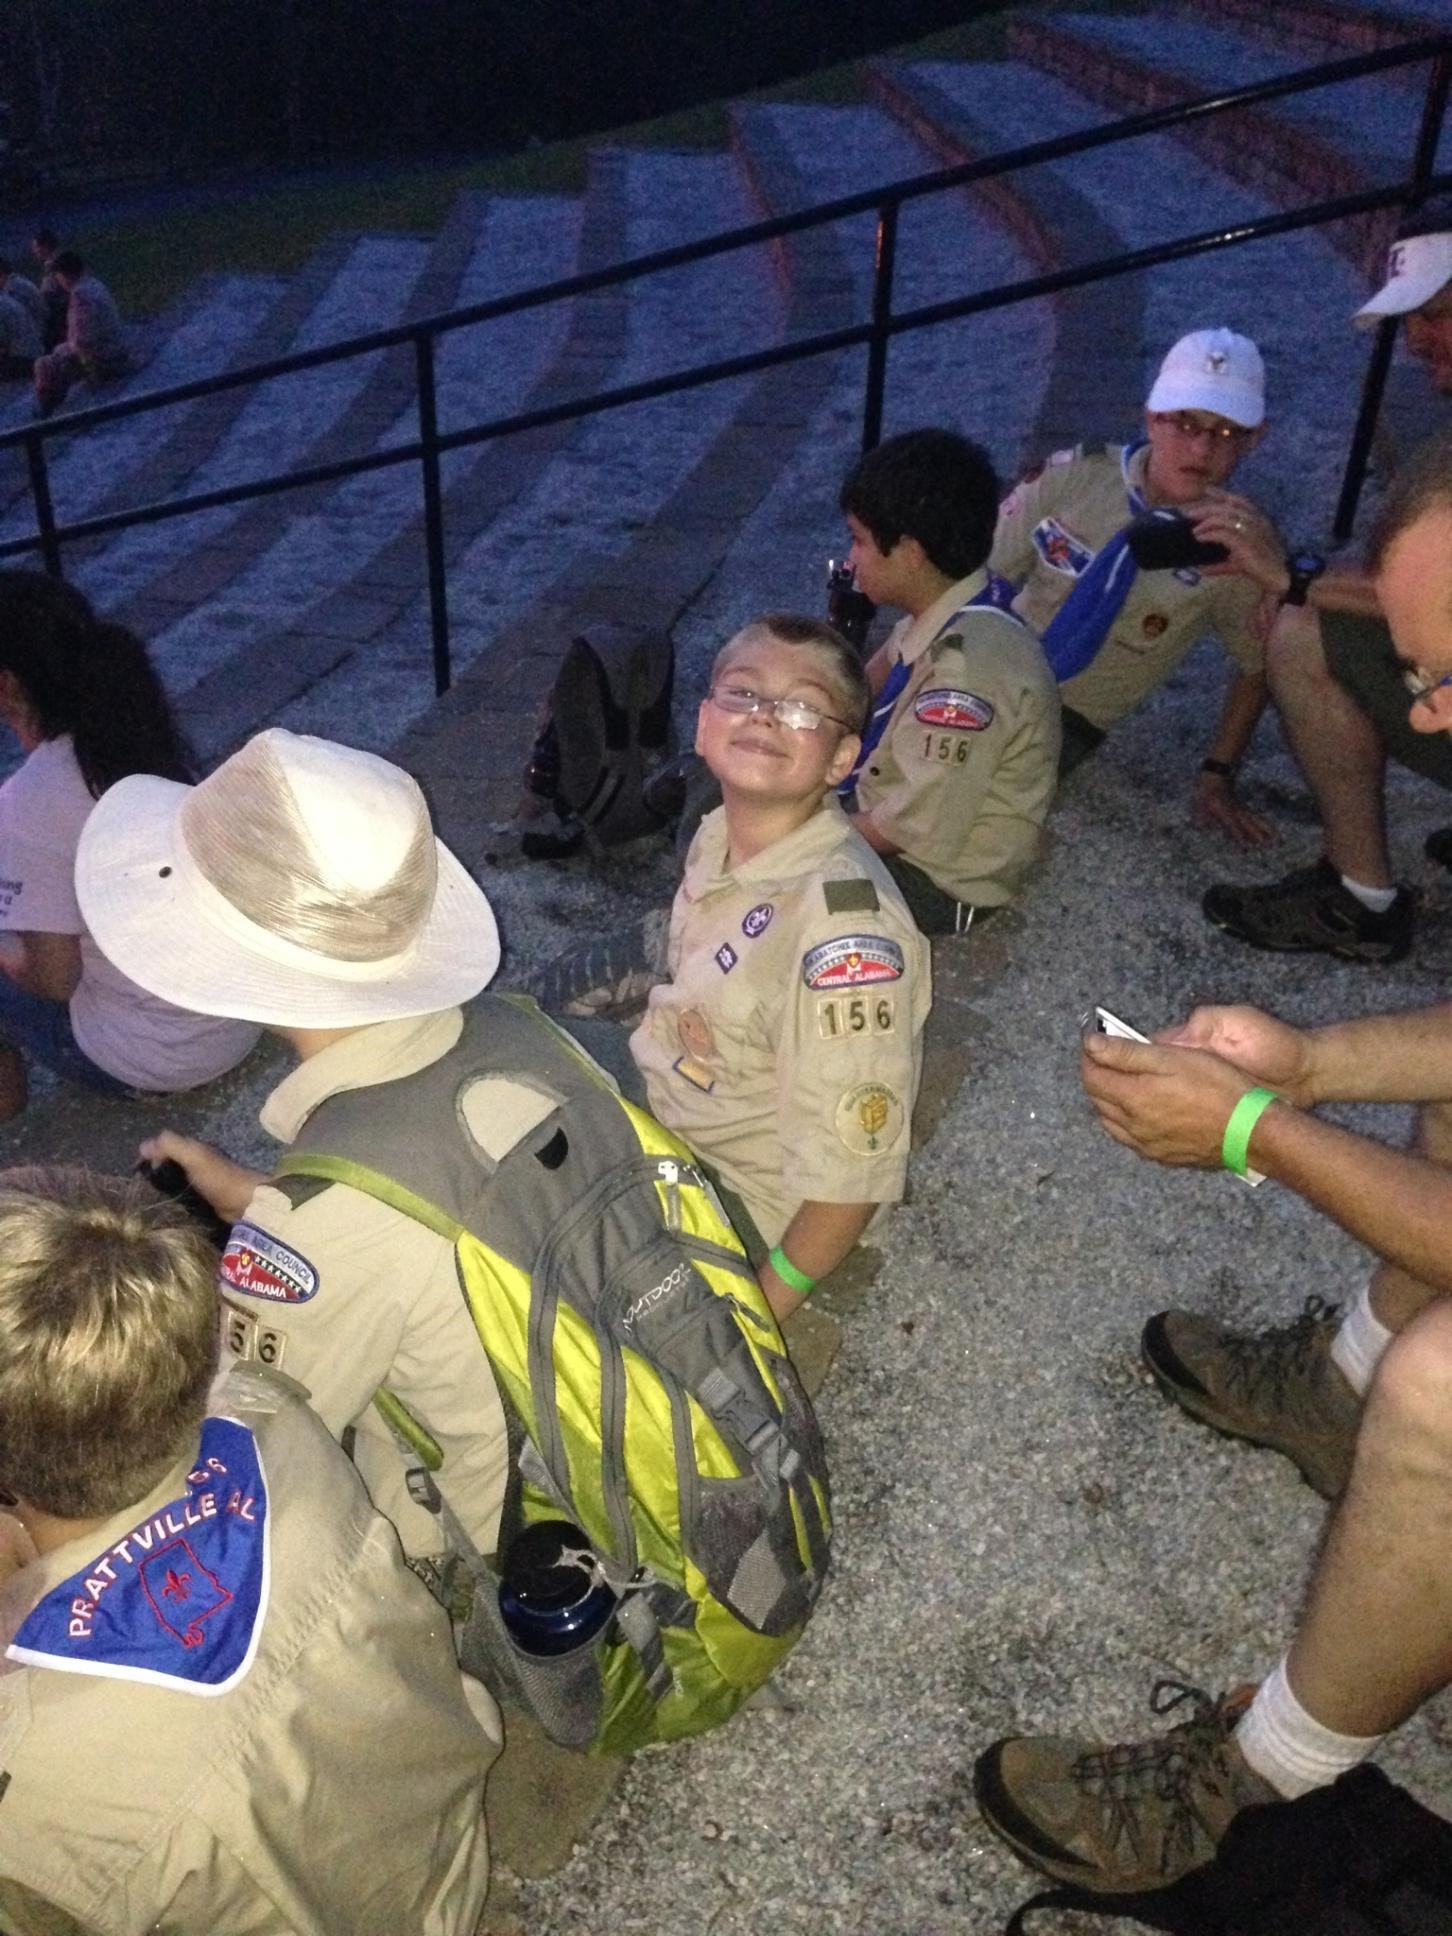 Boy Scout Troop 156 Prattville Fundraiser